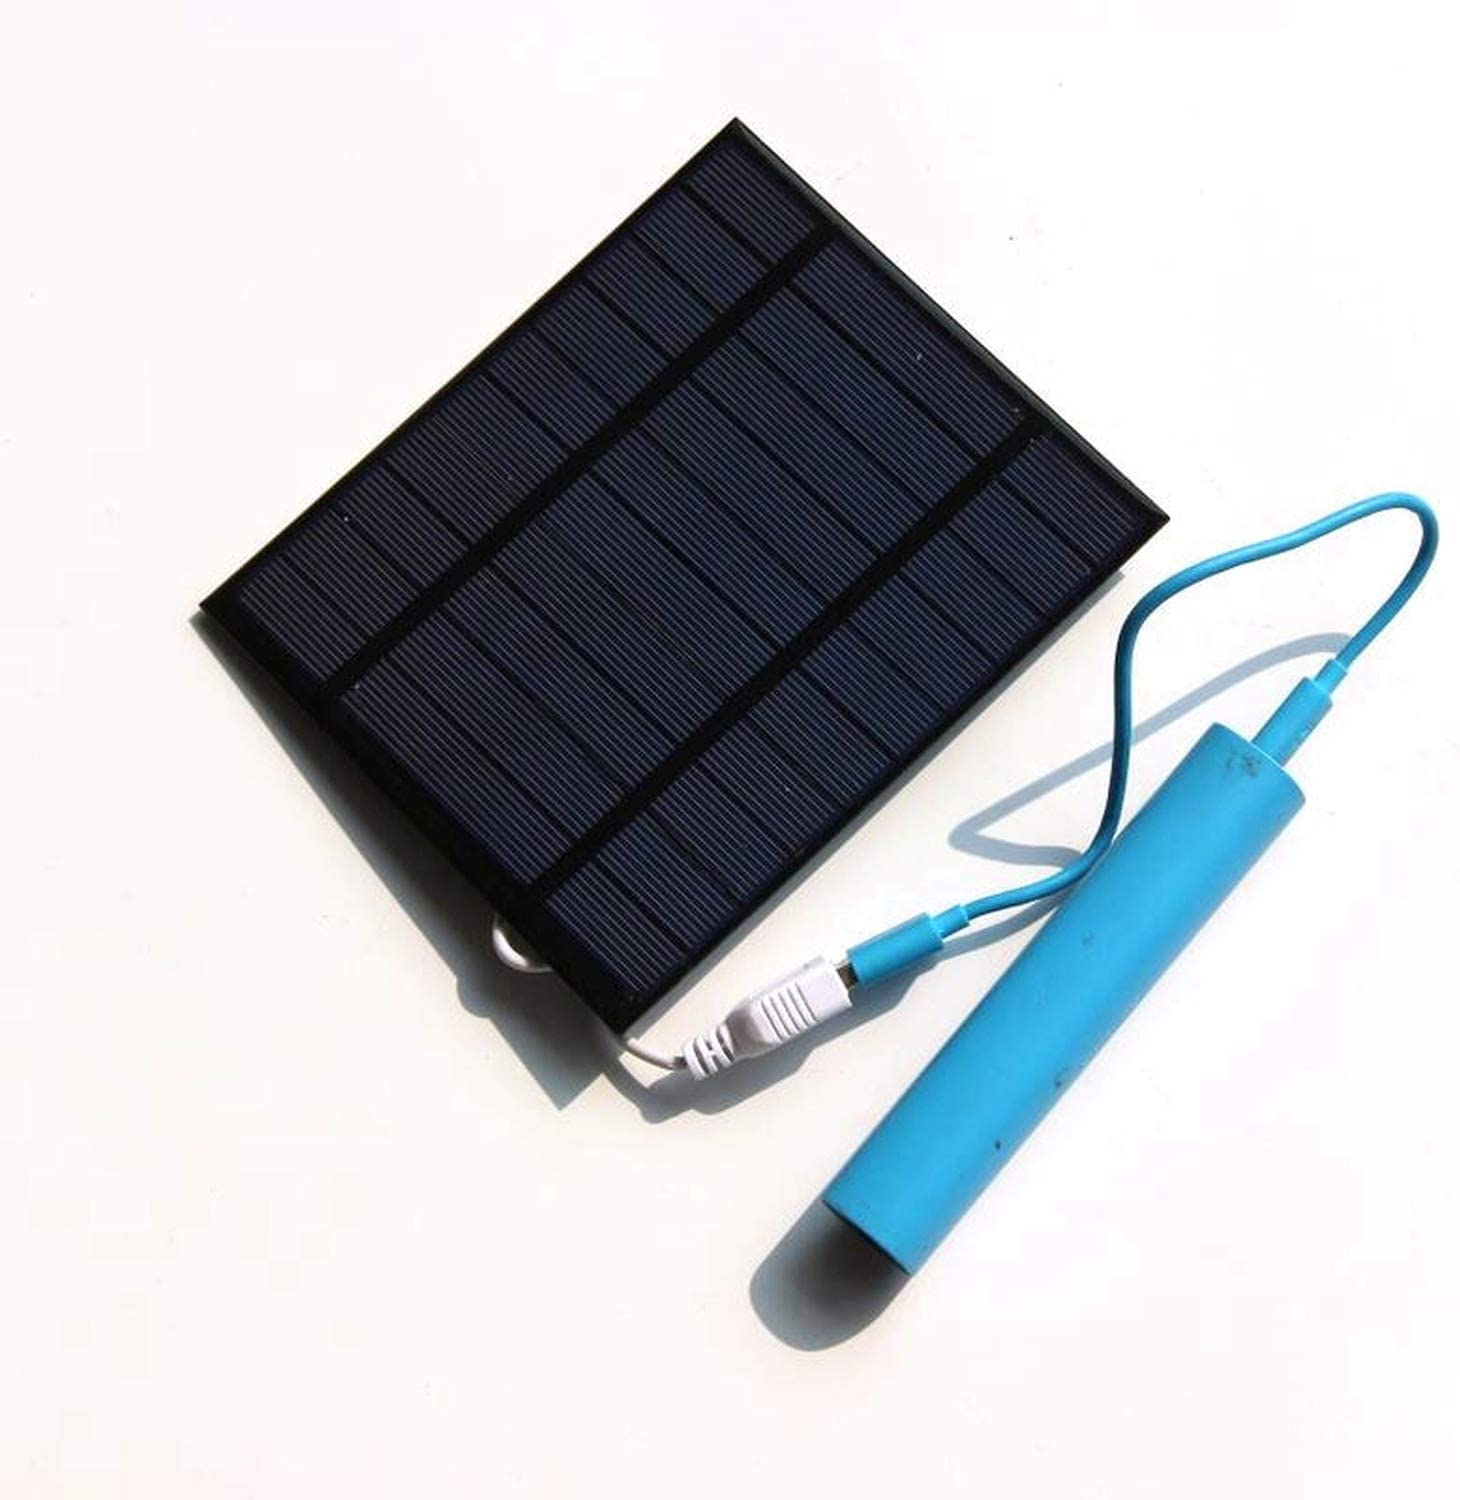 New 2.5W 5V Solar Powered Panel Iron Fan for Home Office Outdoor Traveling Fishing 4 Inch Cooling Ventilation Fan USB New,Black